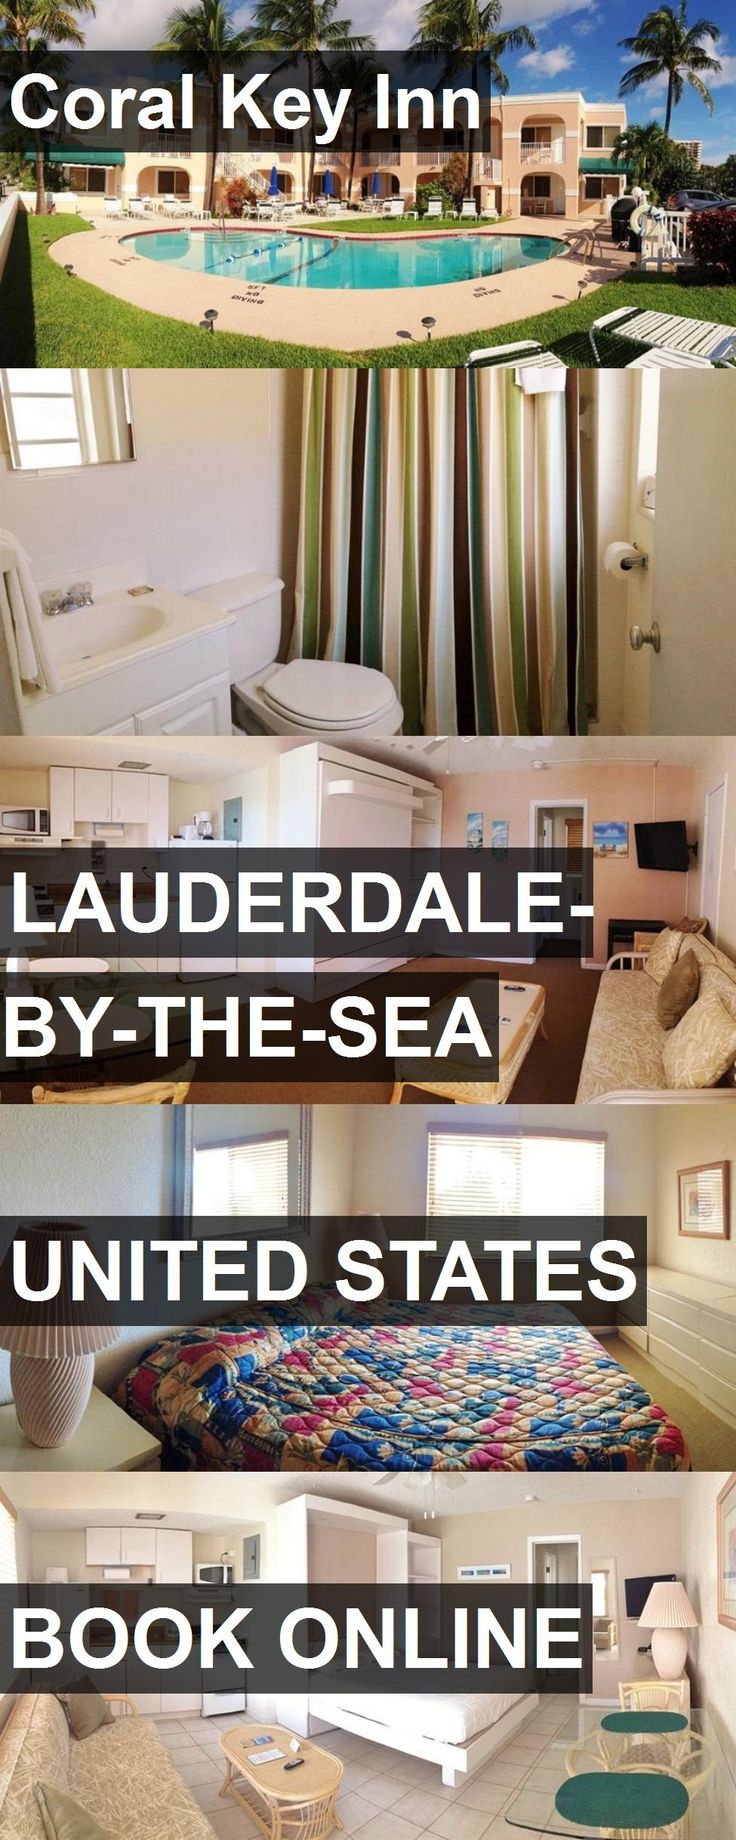 Hotel Coral Key Inn in Lauderdale-By-The-Sea, United States. For more information, photos, reviews and best prices please follow the link. #UnitedStates #Lauderdale-By-The-Sea #travel #vacation #hotel